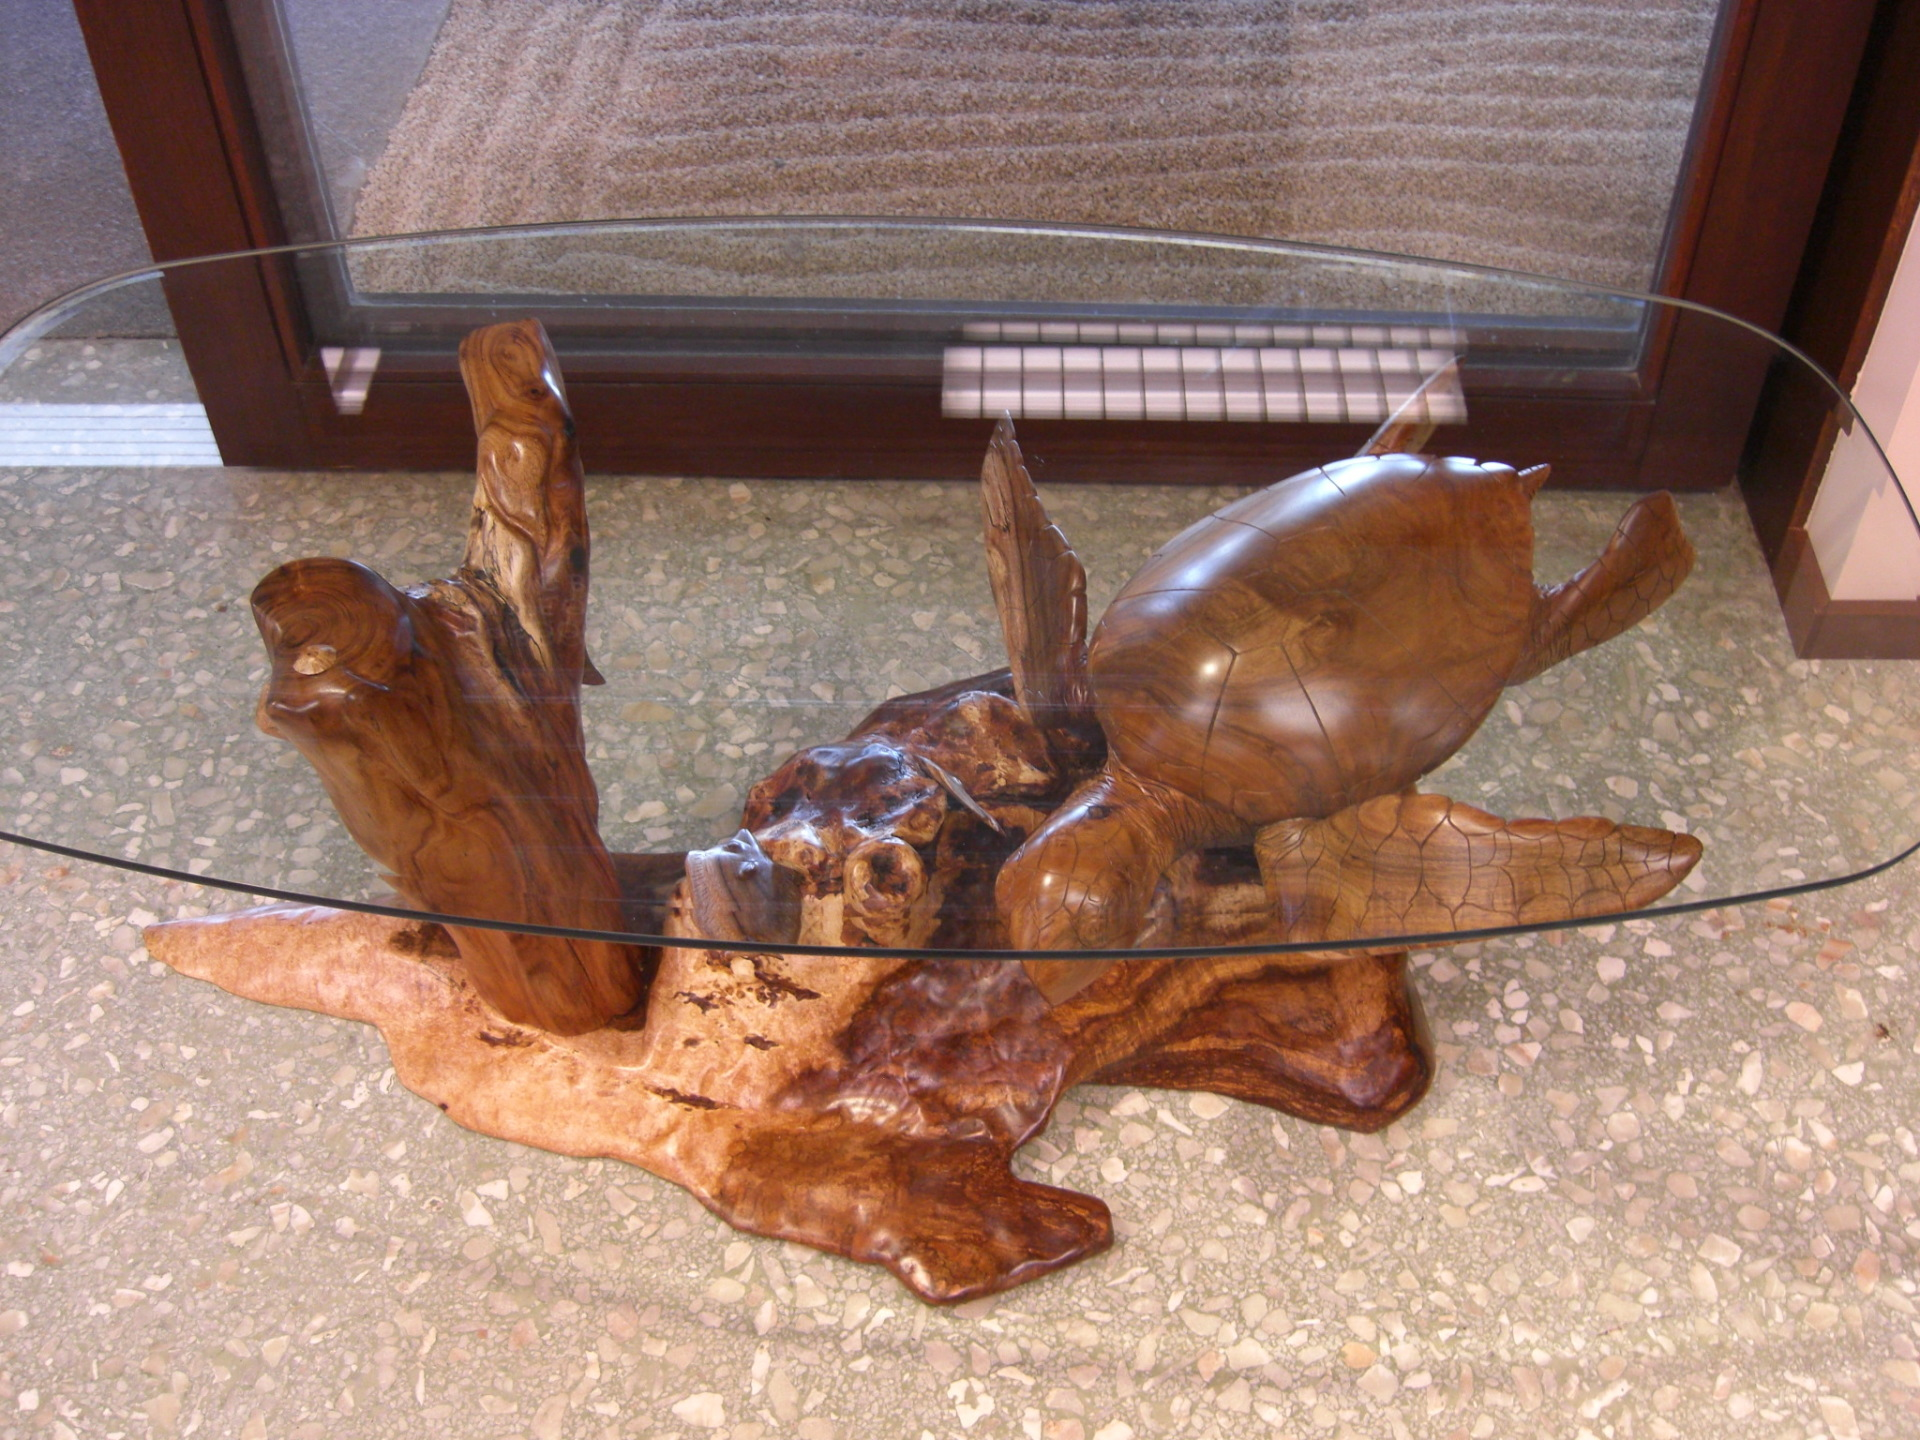 Honu coffee table